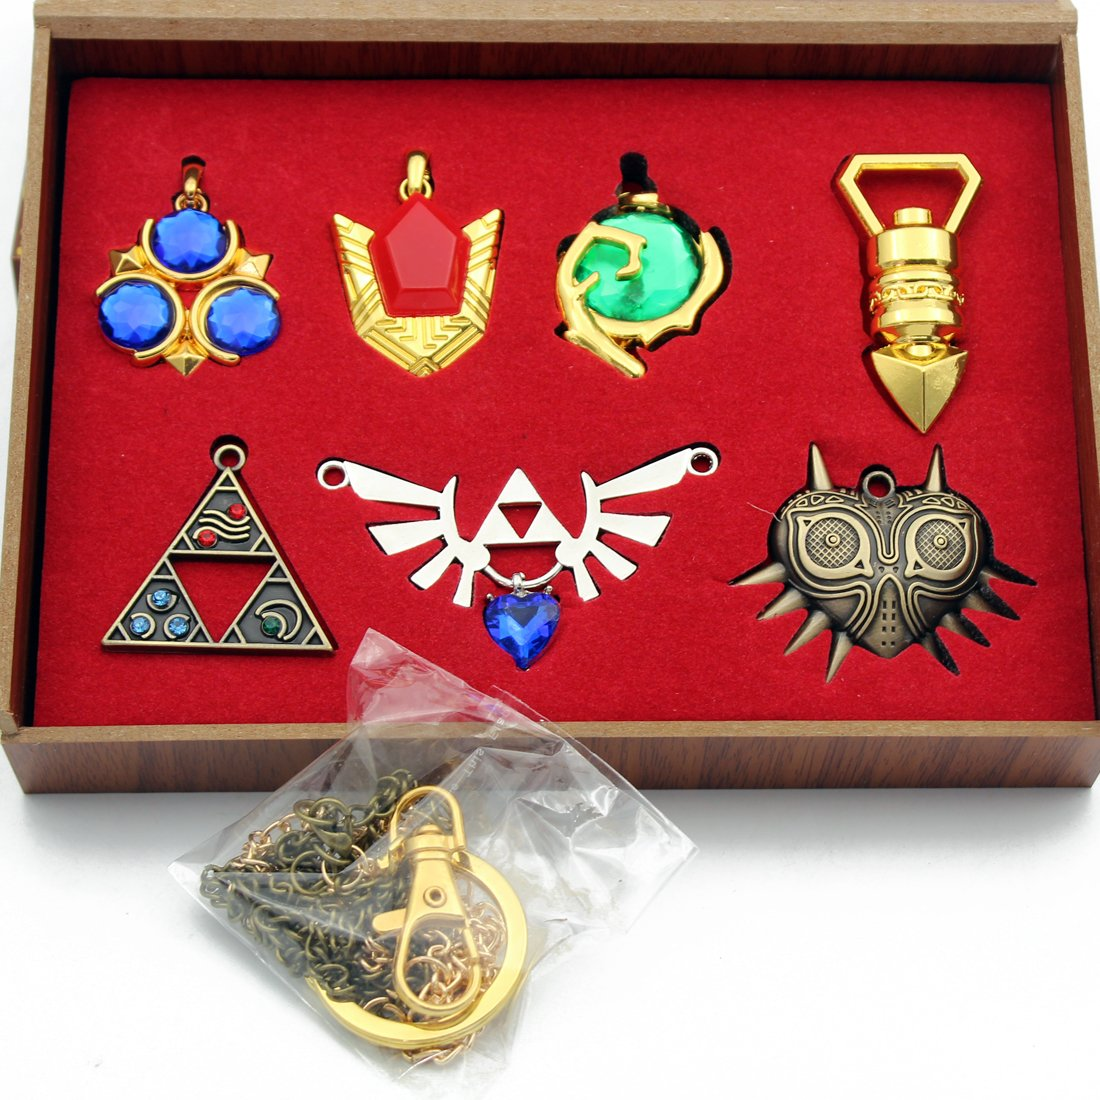 The Legend of Zelda Twilight Princess & Hylian Shield & Master Sword finest collection sets keychain / necklace / jewelry series CHAOZI0